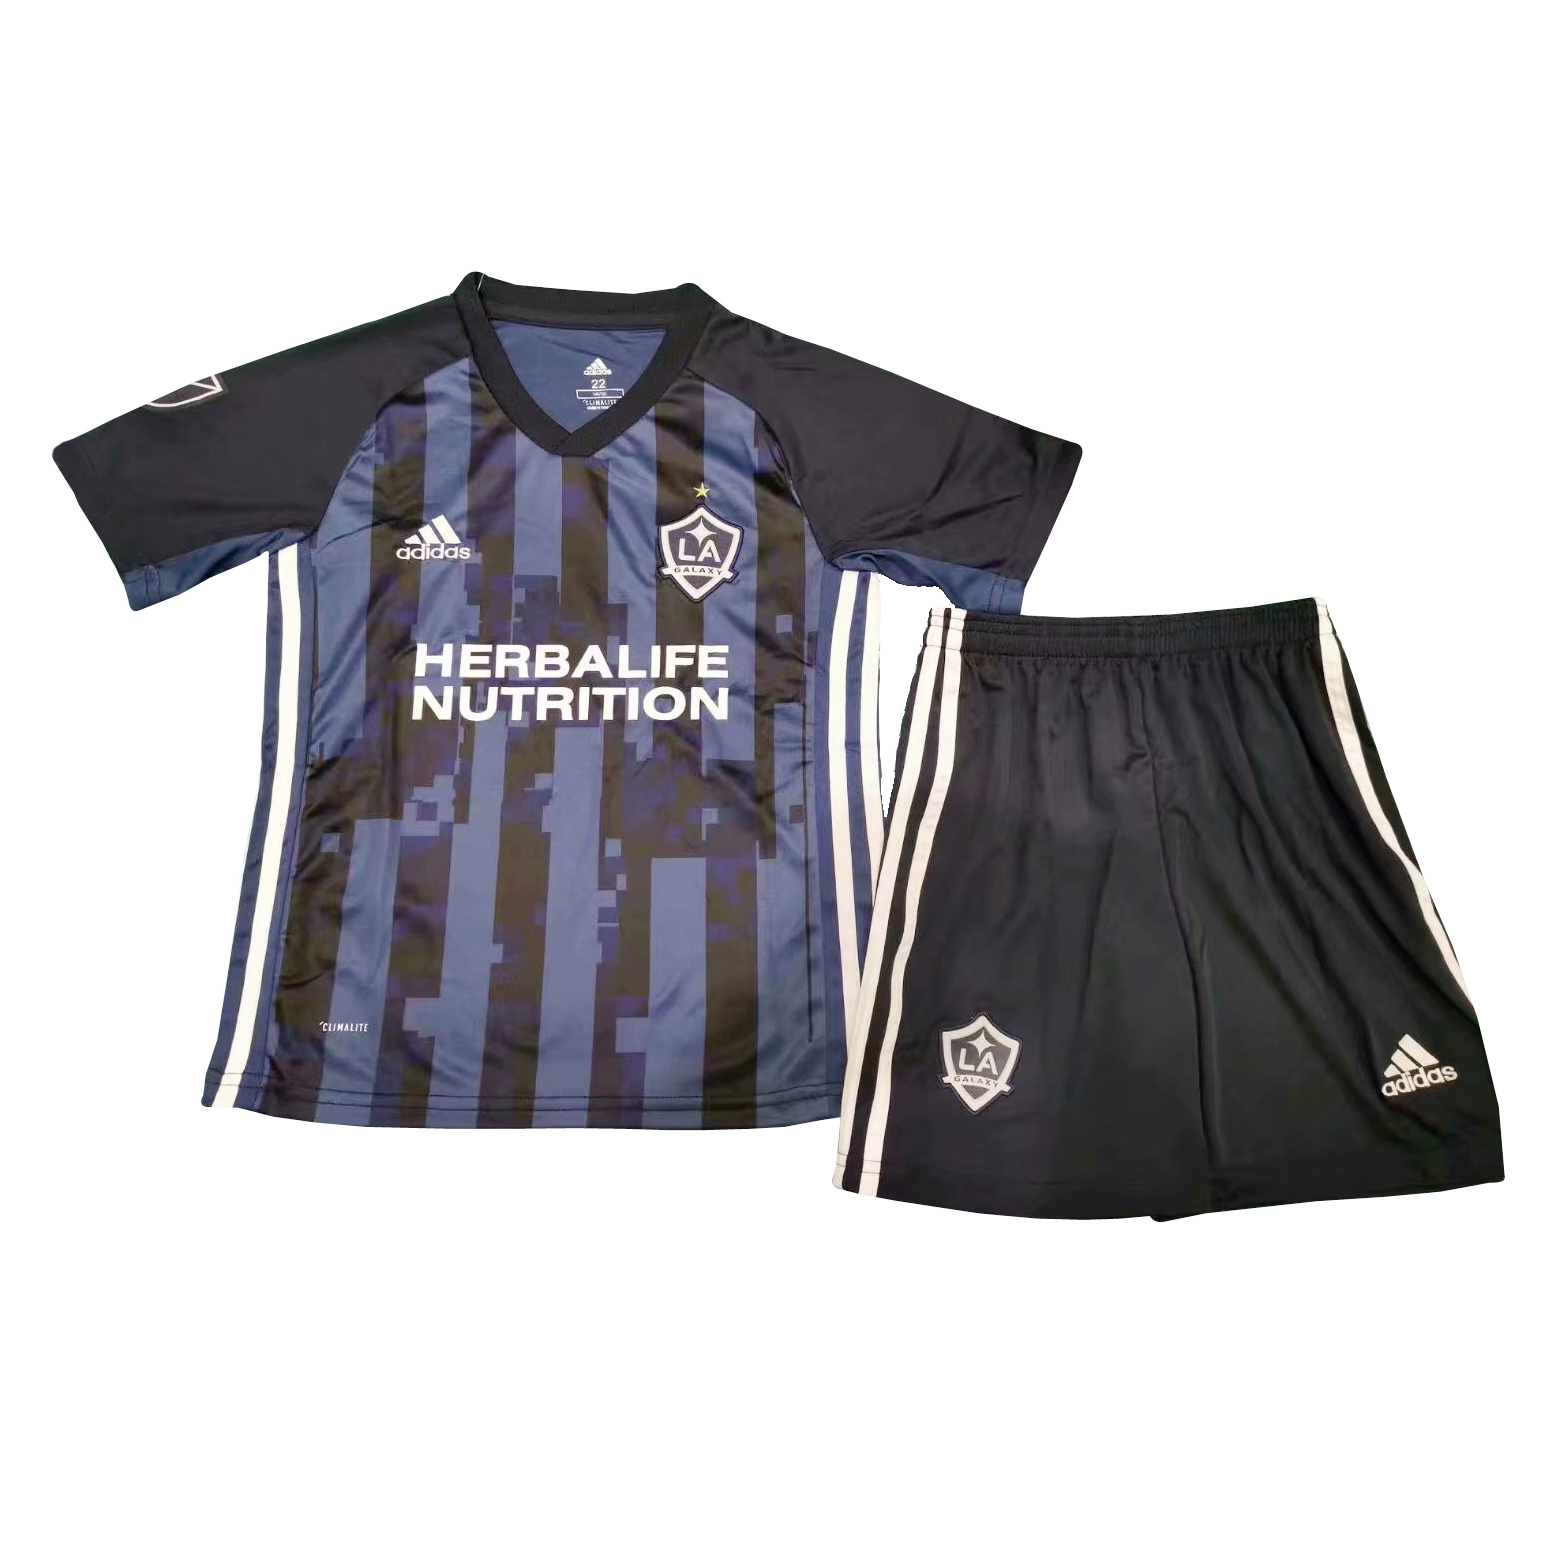 b6a0a0de1 US$ 14.8 - Los Angeles Galaxy Away Jersey Kids' 2019/20 -  www.fcsoccerworld.com